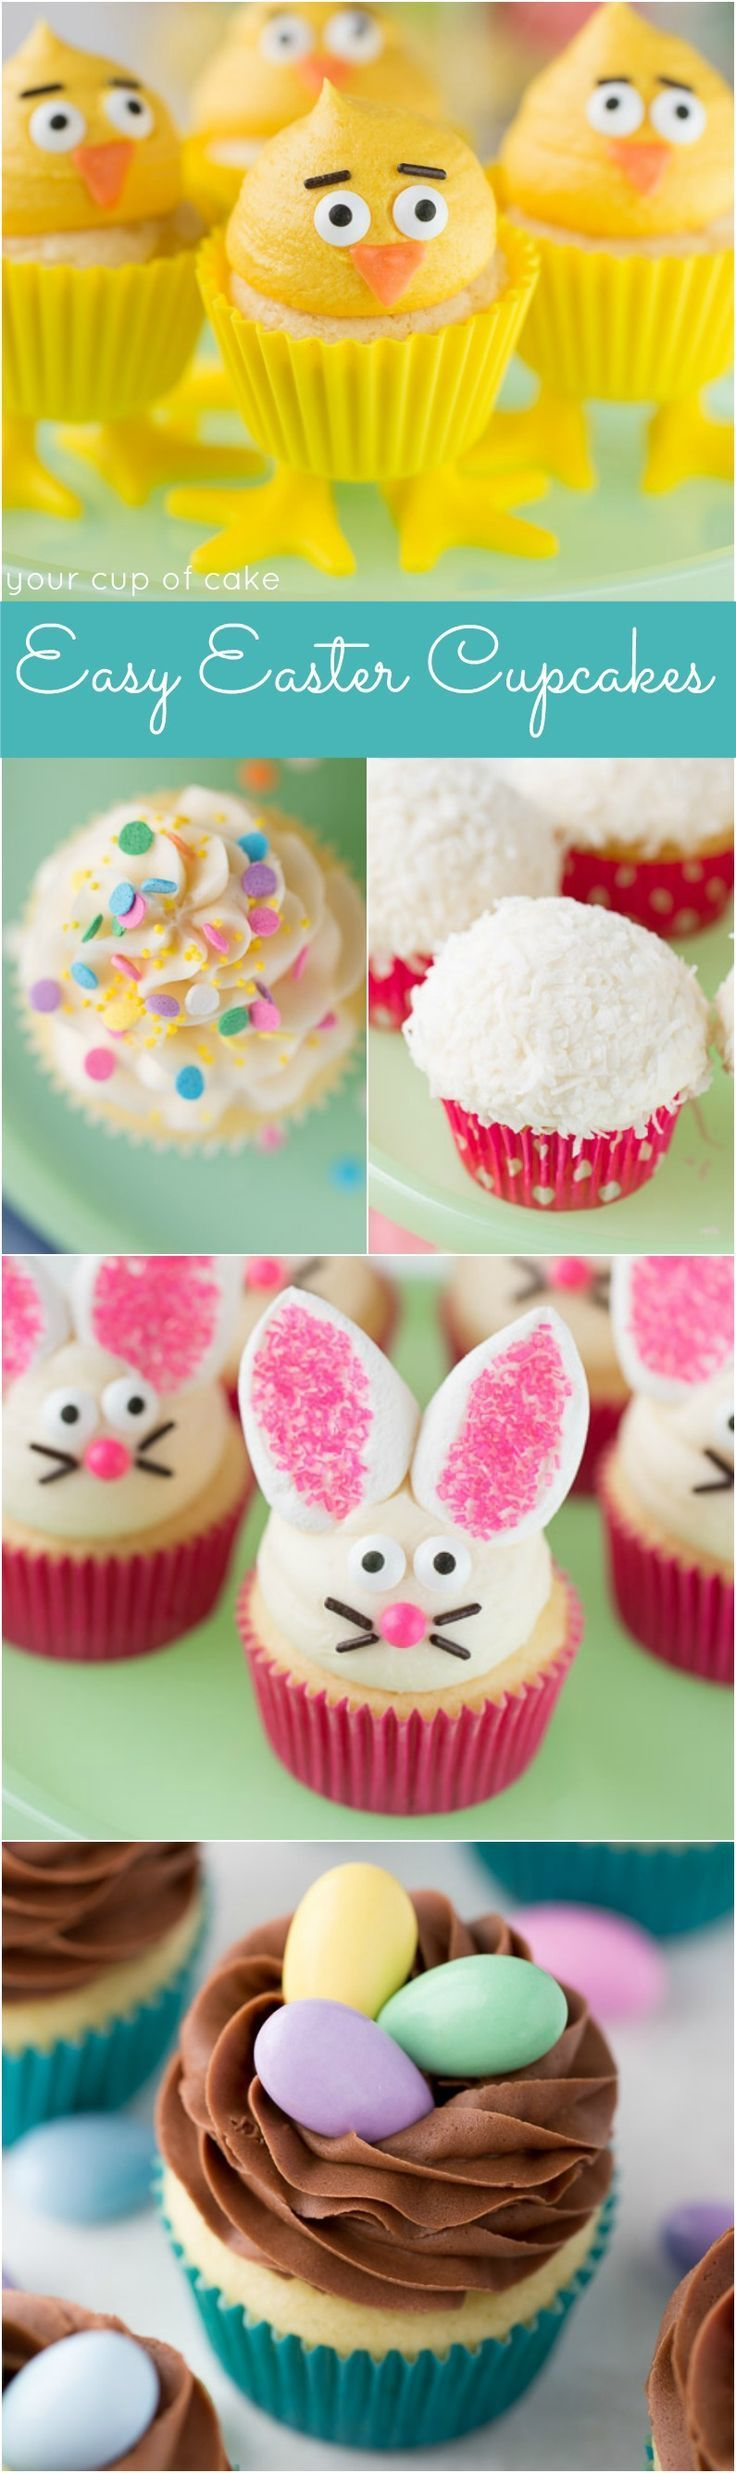 Cupcake Decorating Ideas With Marshmallows : 1000+ ideas about Cupcakes Decorating on Pinterest ...